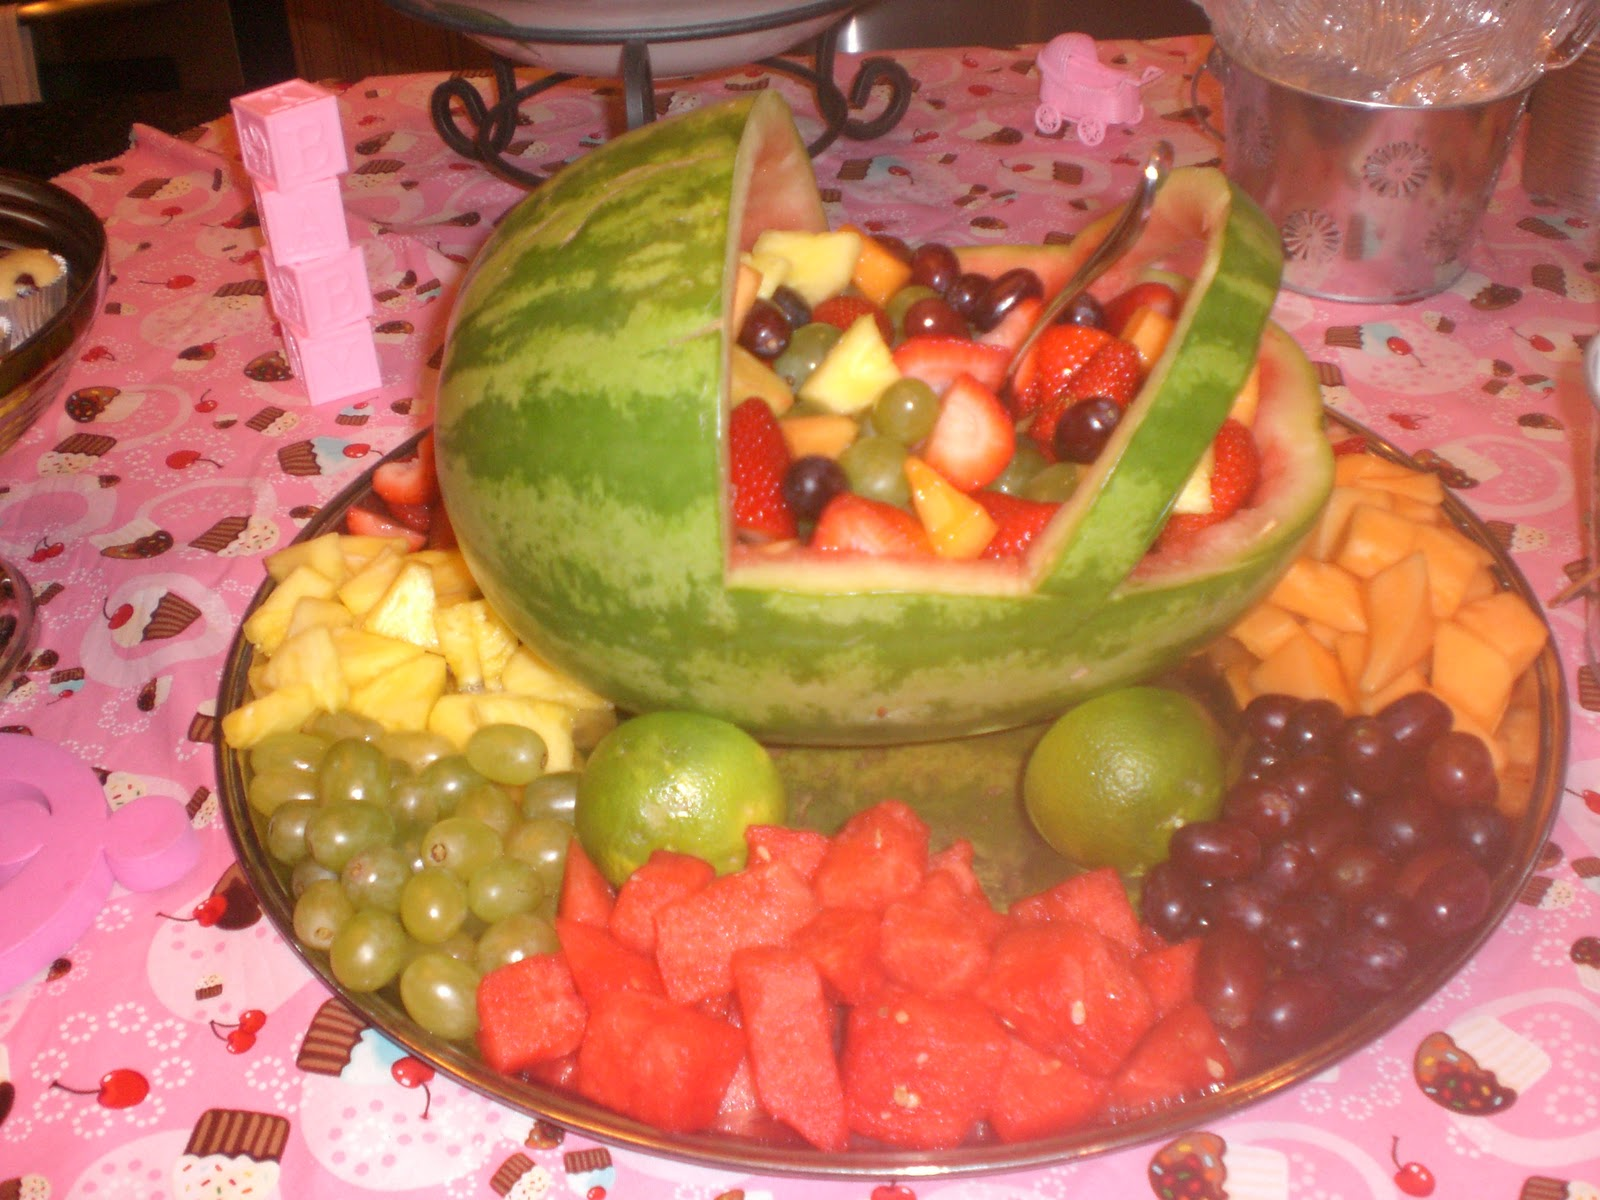 Baby Shower Fruit Platter Ideas Pictures to Pin on ...